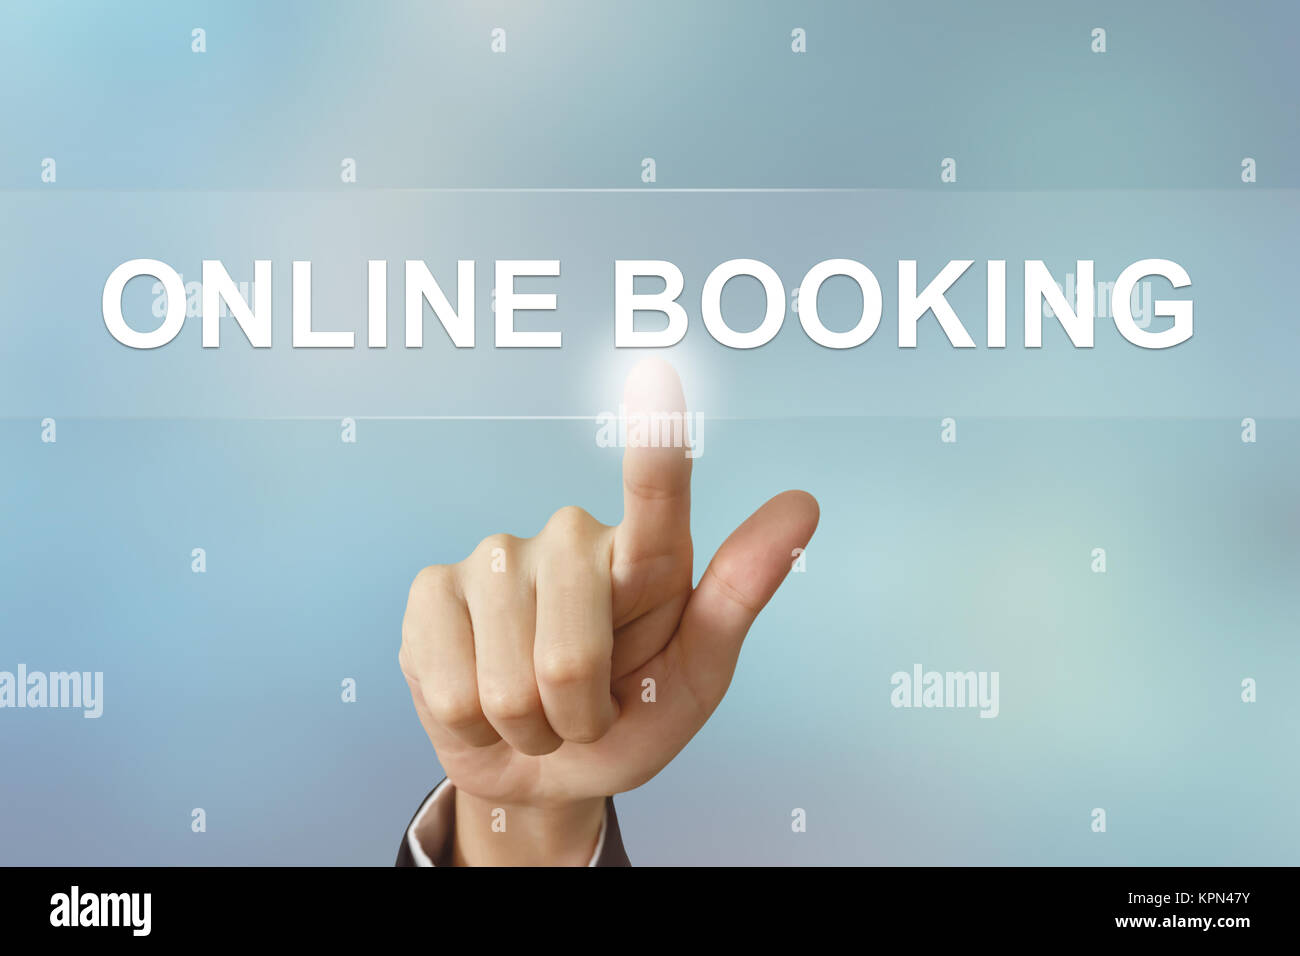 business hand clicking online booking button on blurred background - Stock Image